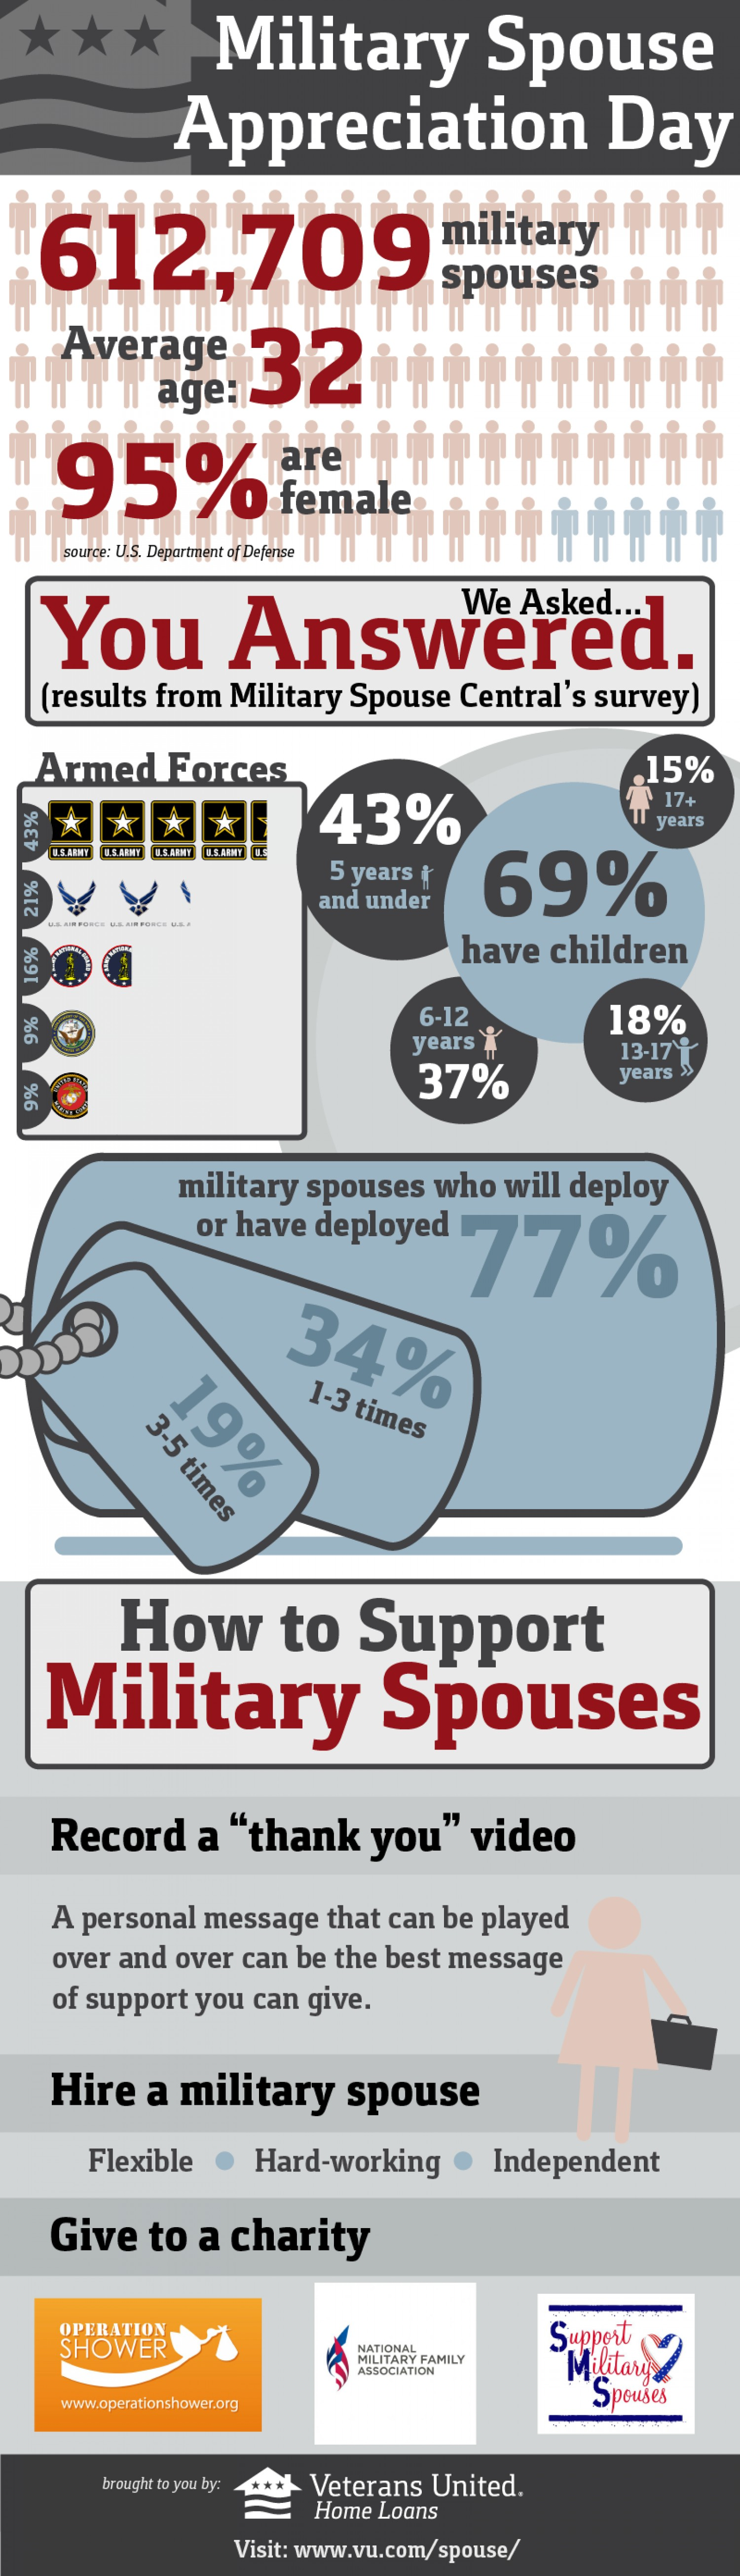 9. Appreciating military spouses